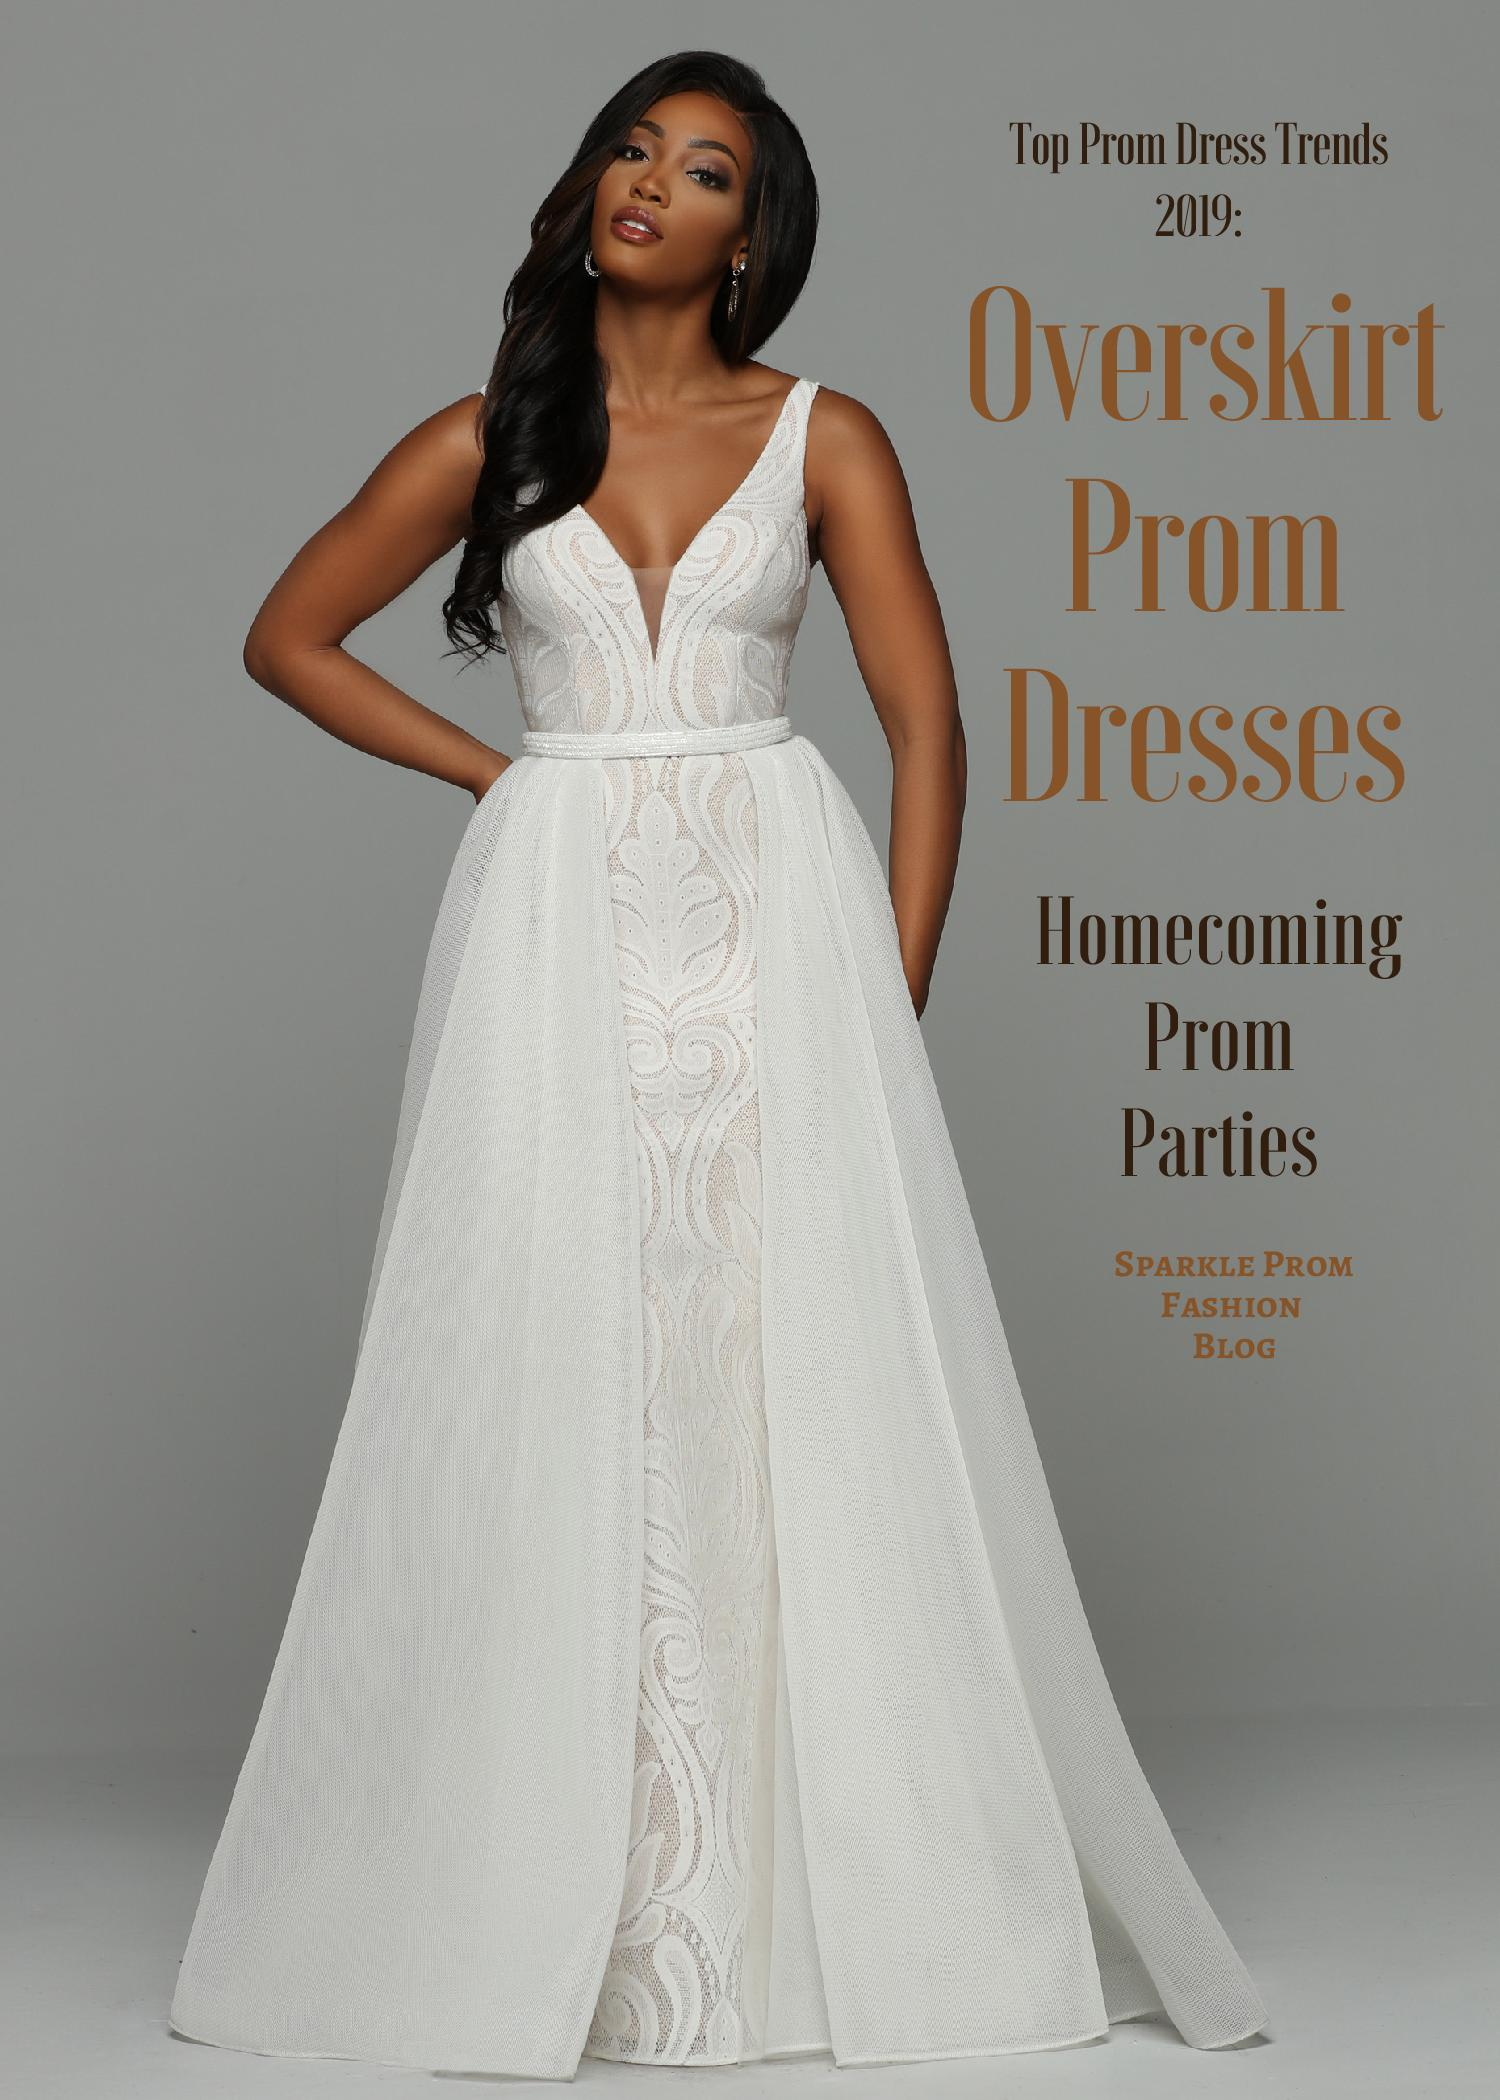 Top Prom Dress Trends 2019 Overskirt Prom Dresses Sparkle Prom Blog